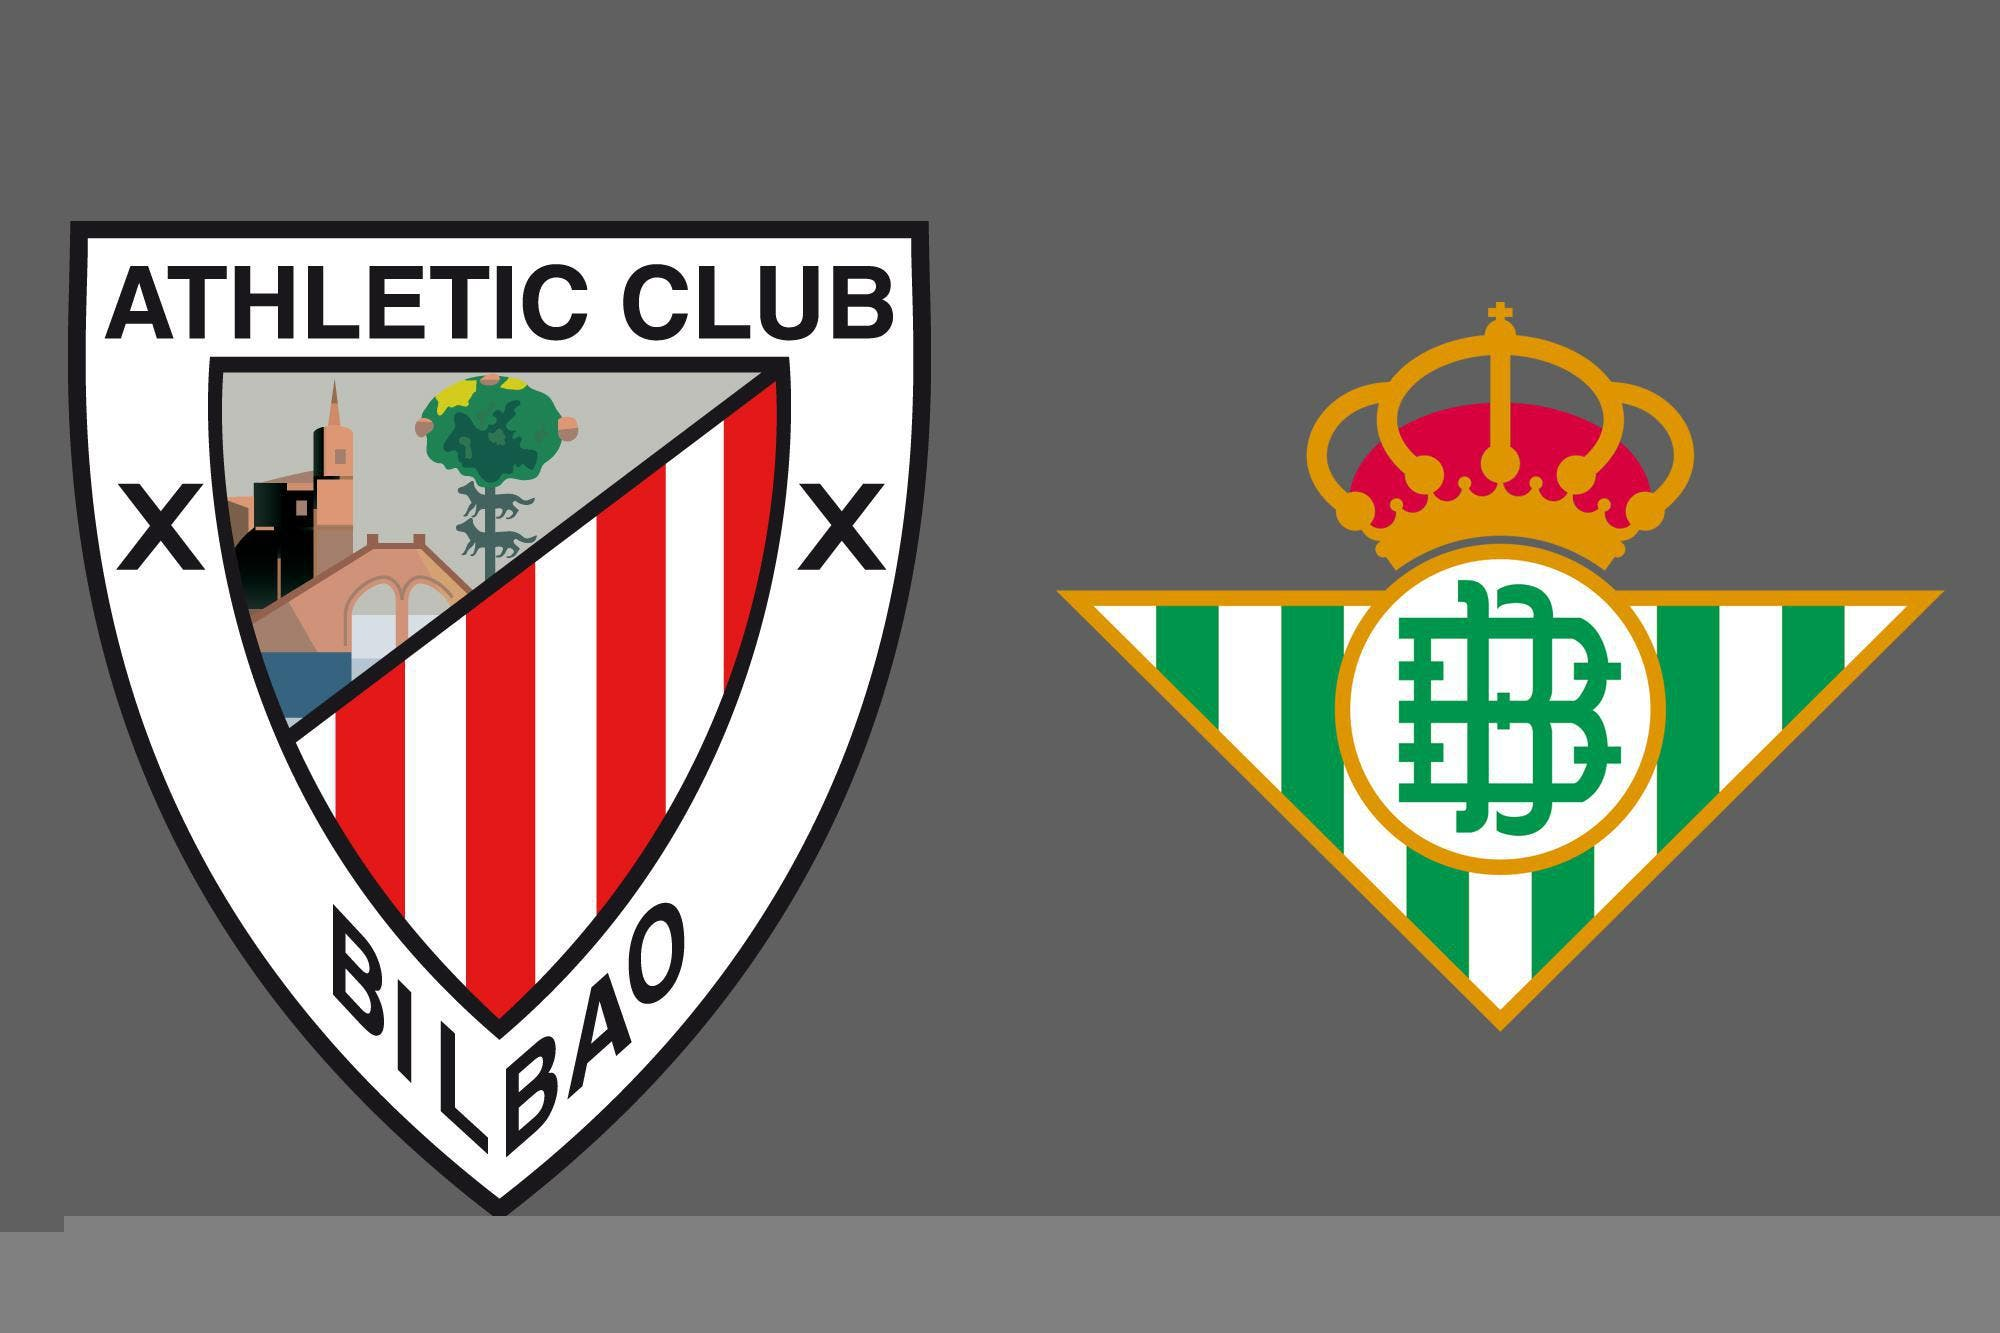 Liga de España: Athletic Club de Bilbao venció por 4-0 a Betis como local